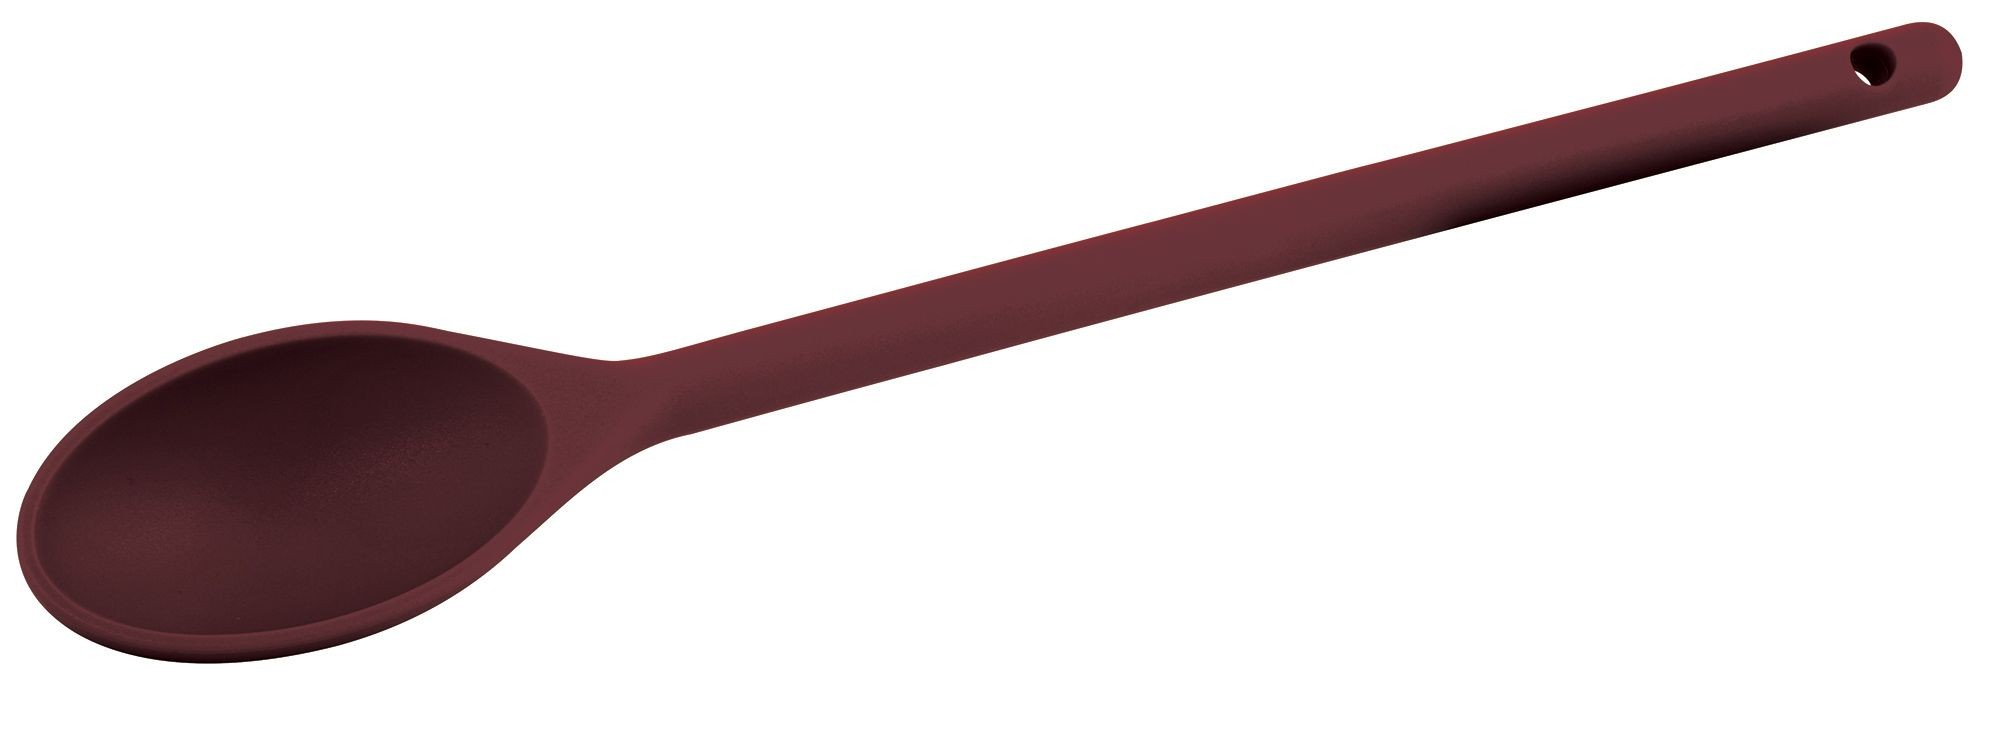 Winco NS-15R Red Nylon Heat Resistant Spoon, 15""